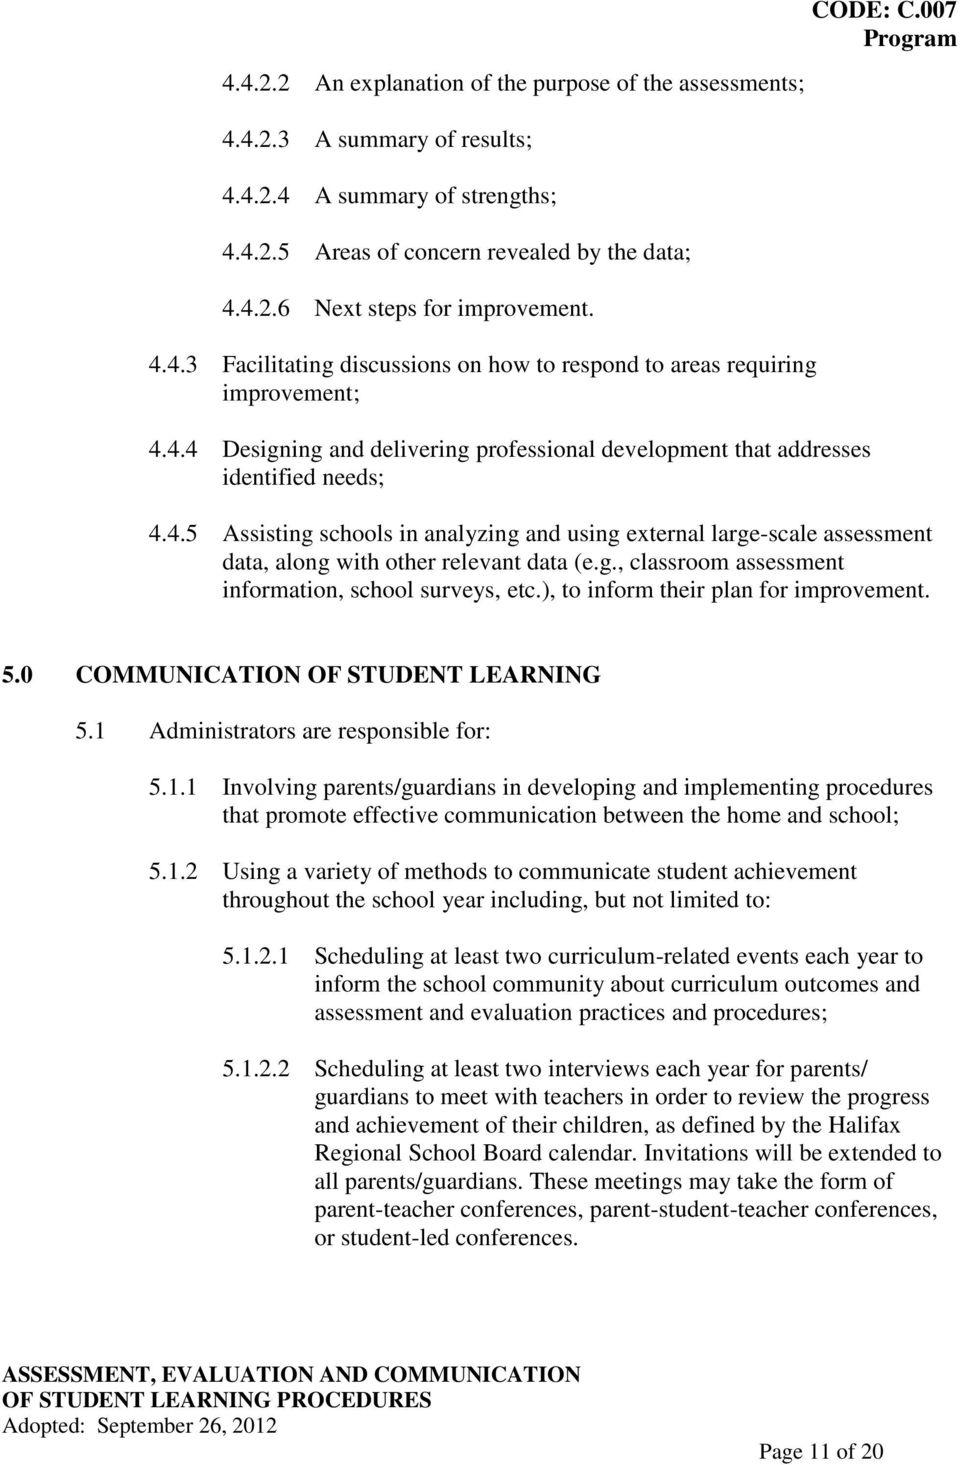 g., classroom assessment information, school surveys, etc.), to inform their plan for improvement. 5.0 COMMUNICATION OF STUDENT LEARNING 5.1